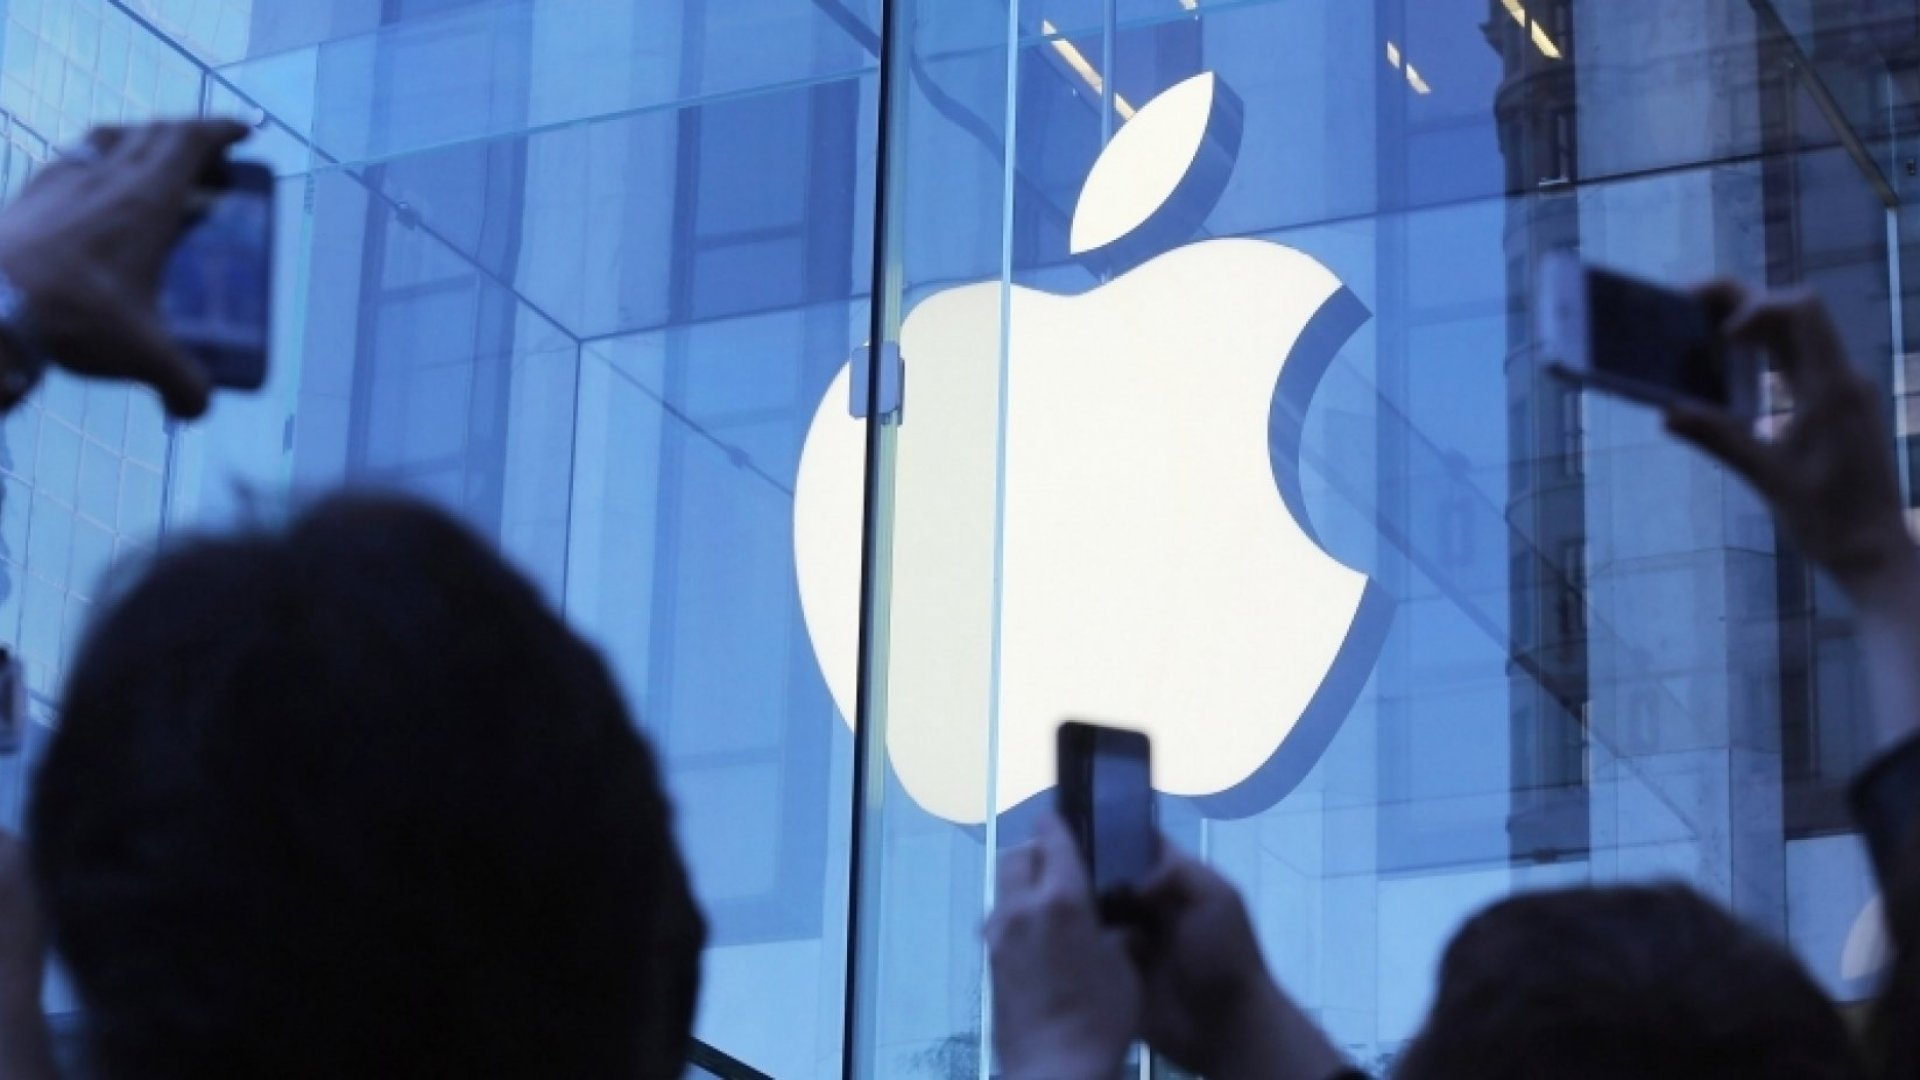 Here's Bad PR: Wealthy Family Sues Apple for Alleged Racial Profiling